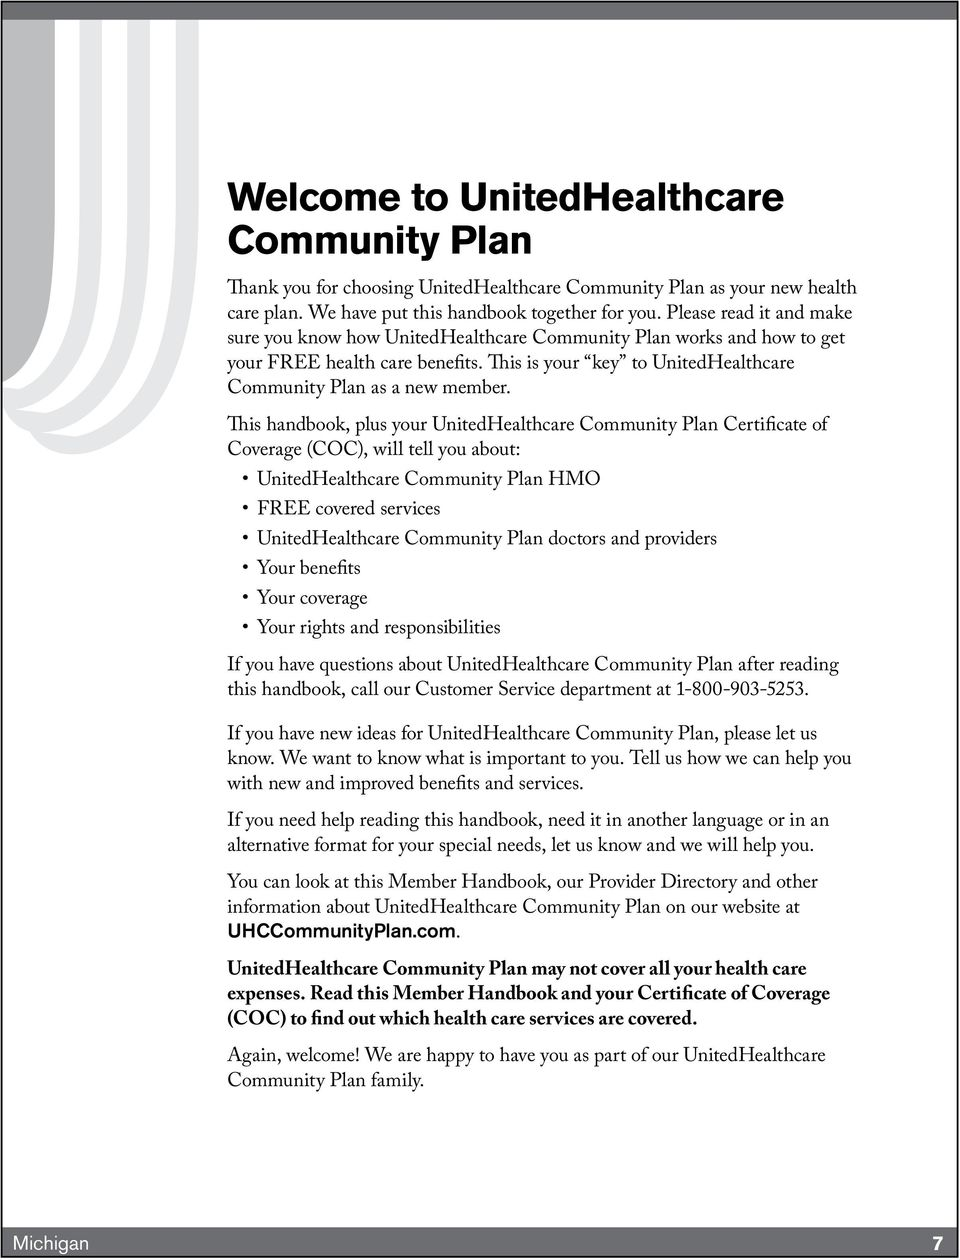 This handbook, plus your UnitedHealthcare Community Plan Certificate of Coverage (COC), will tell you about: UnitedHealthcare Community Plan HMO FREE covered services UnitedHealthcare Community Plan